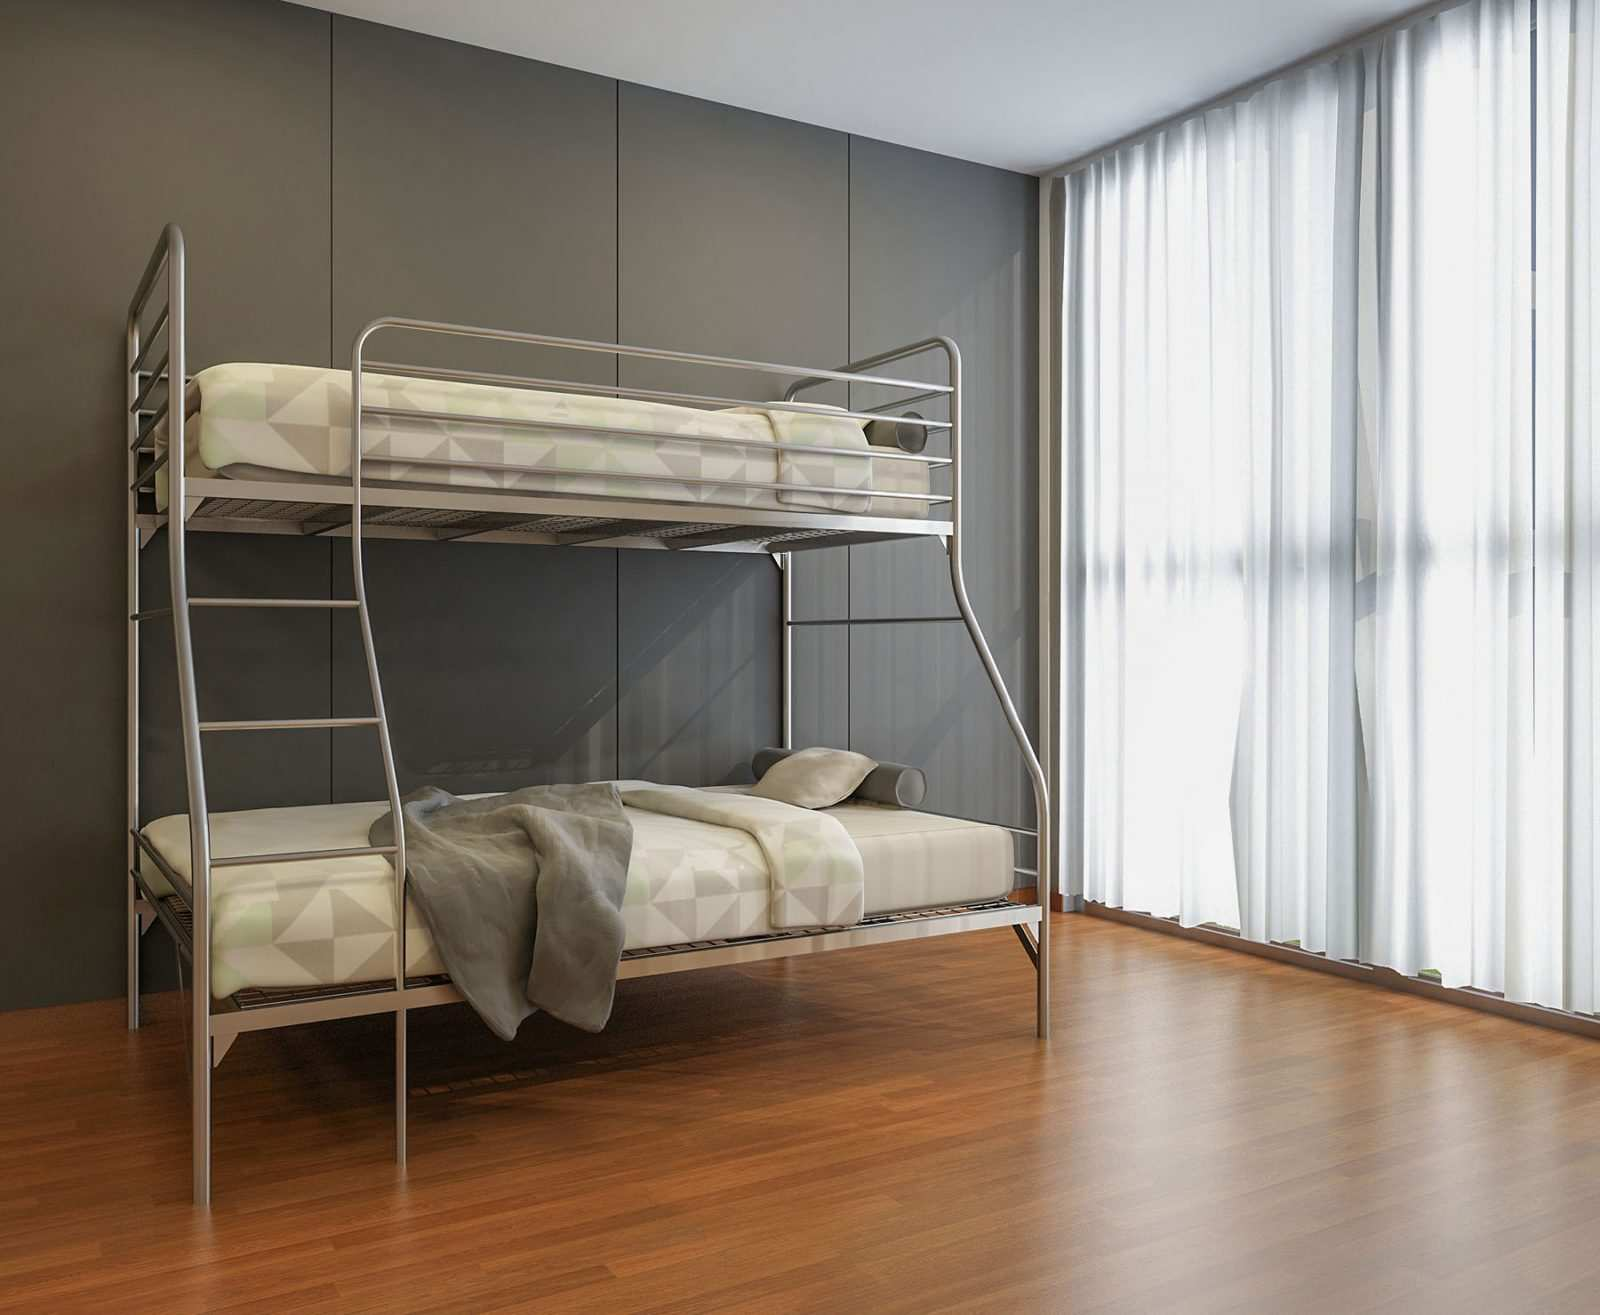 Picture of: Community Single Over Double Bunk Beds Best Bunk Beds